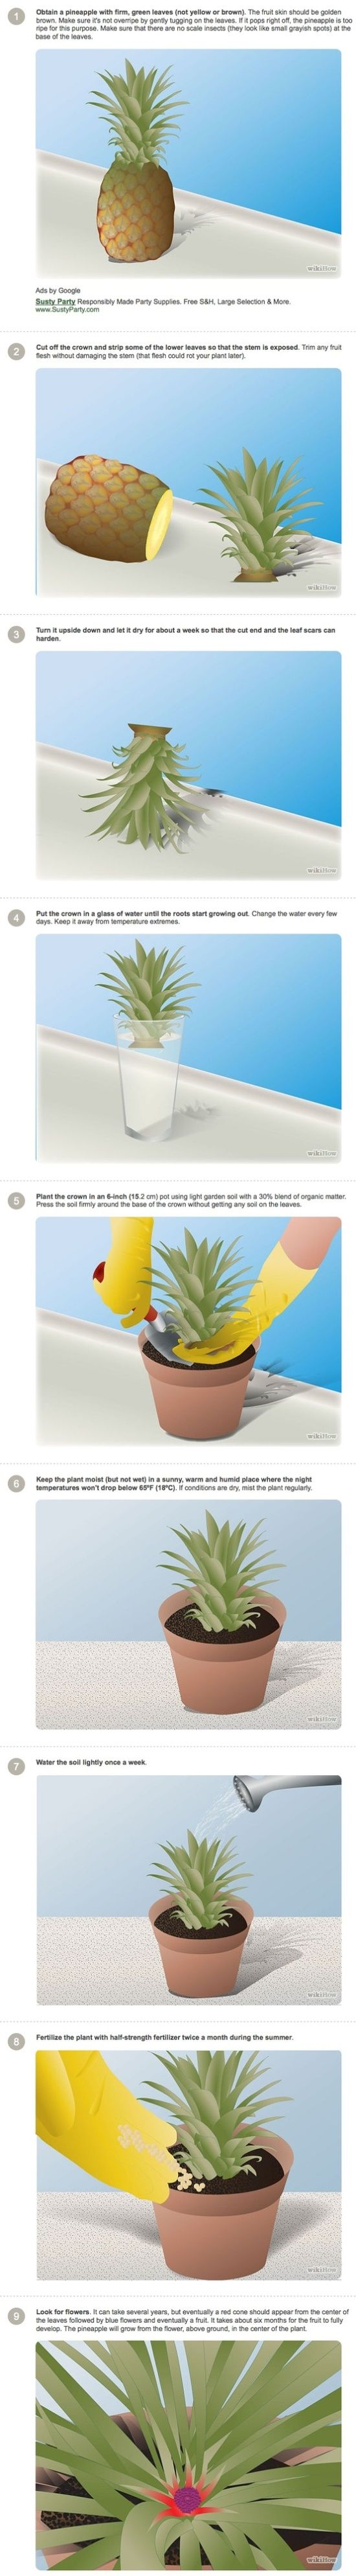 Grow your own pineapple plant from the top of another!